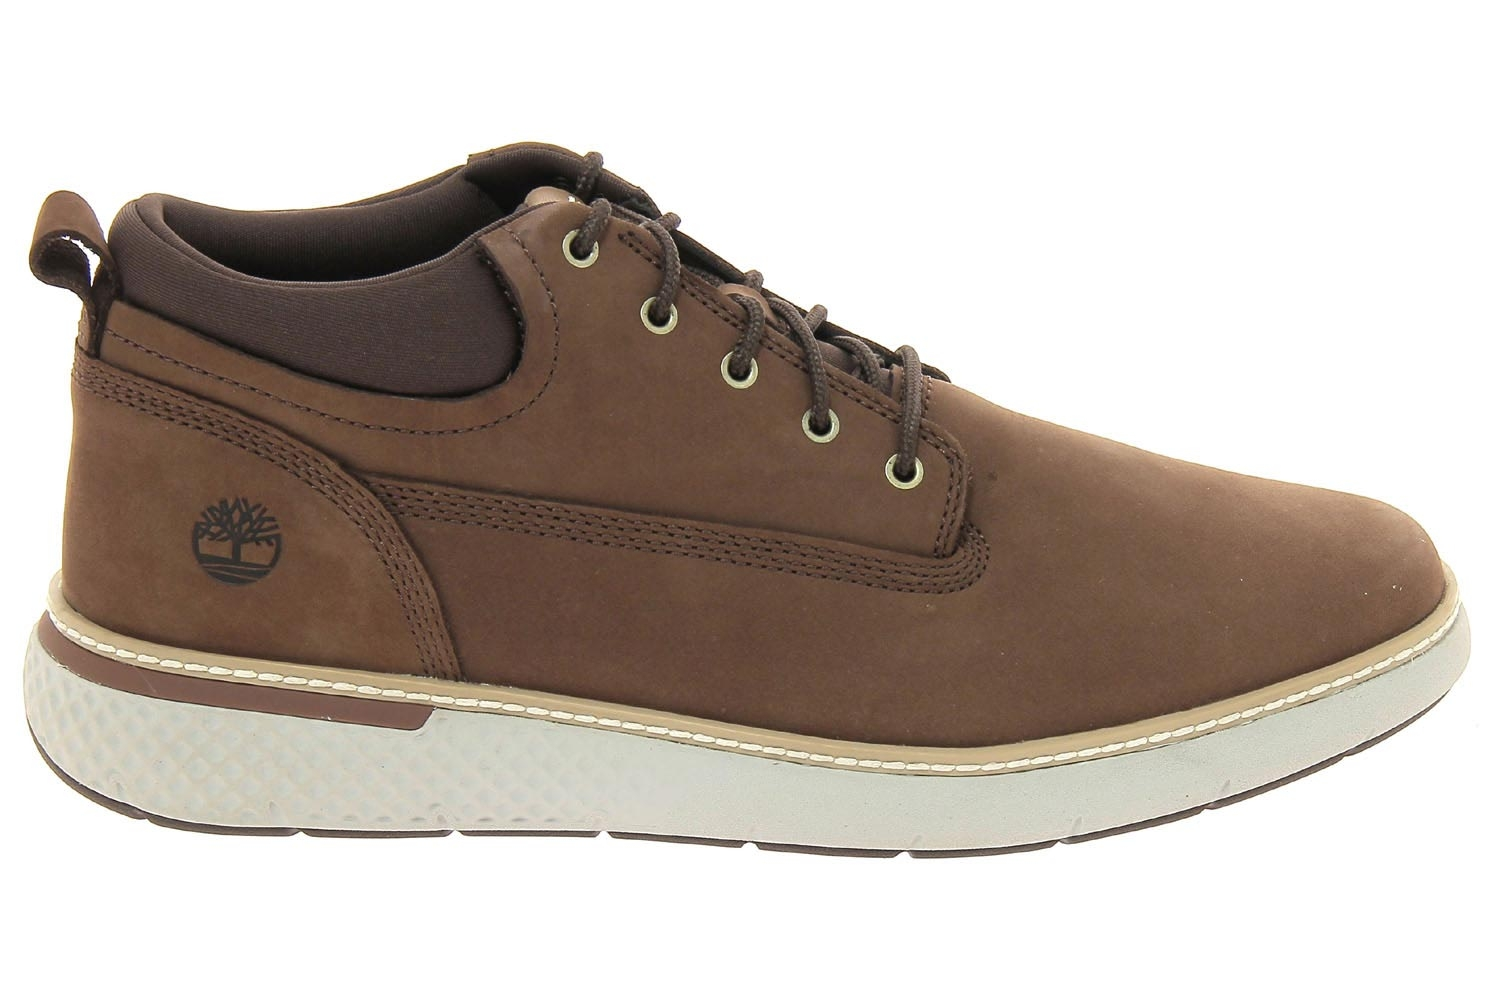 chaussures homme timberland marron